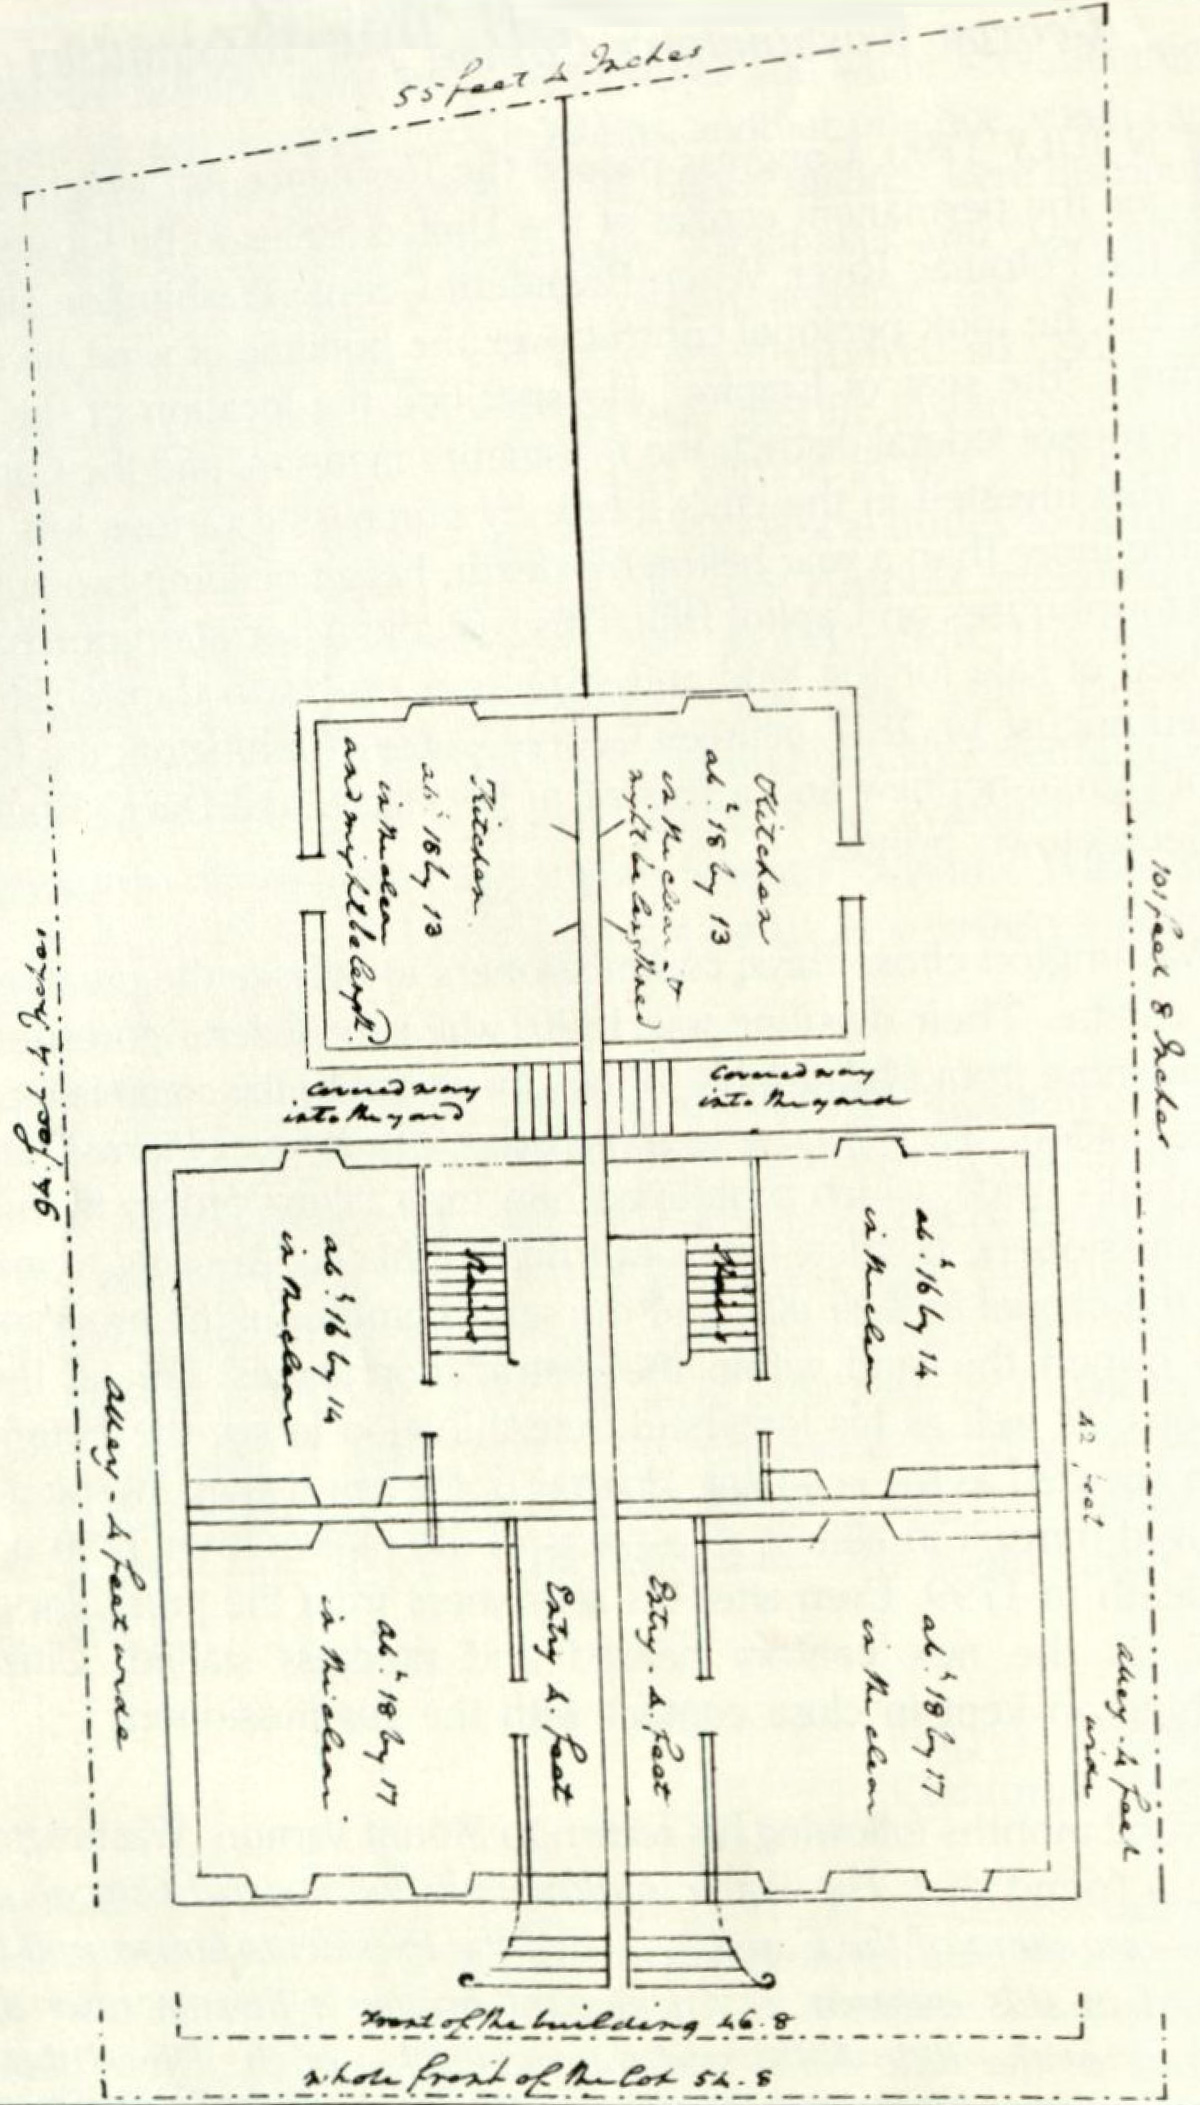 Washington's own sketch of his plan for his townhouses exhibits a view of the ground, second, and third floors. (Courtesy Mr. Albert Small, Washington D.C.)